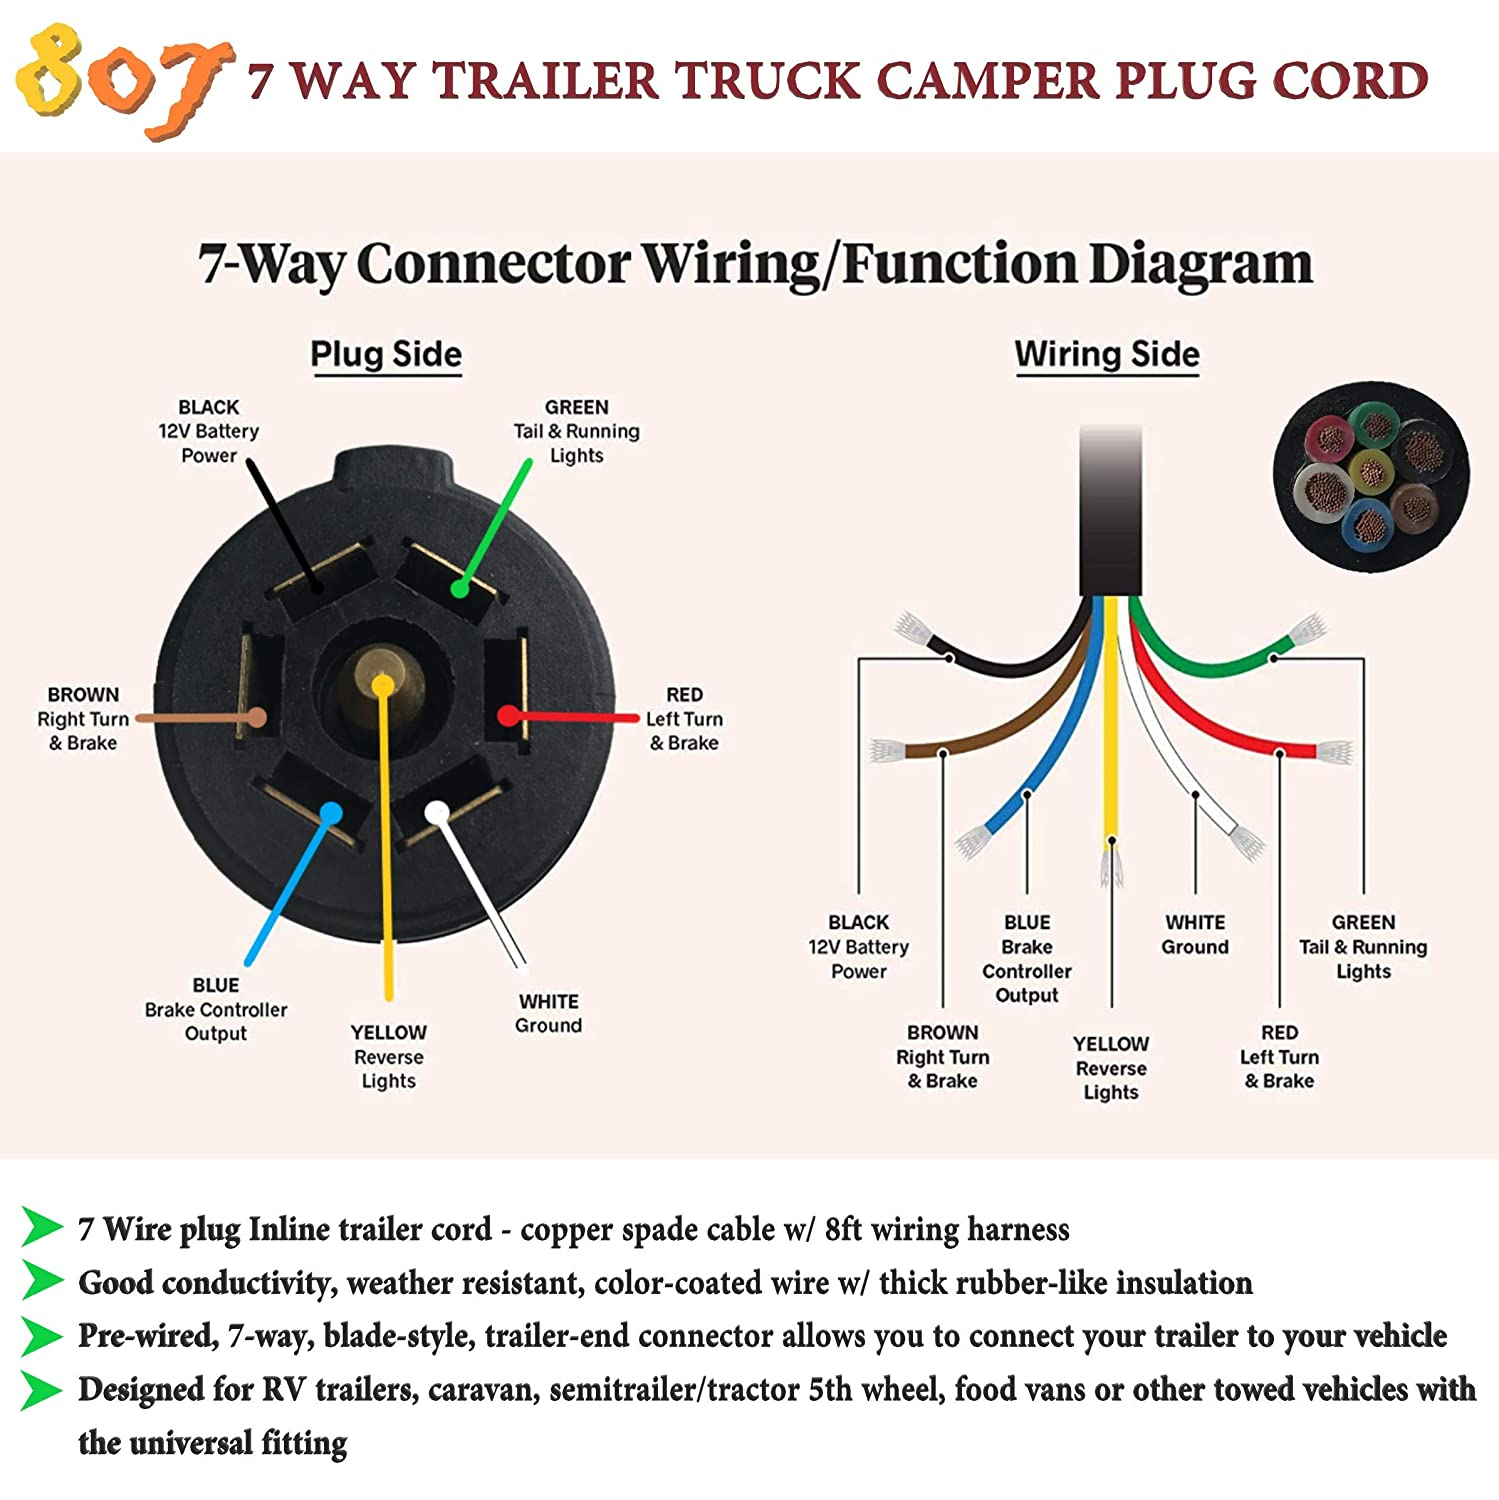 Dodge Ram Trailer Plug Wiring Diagram from images-na.ssl-images-amazon.com